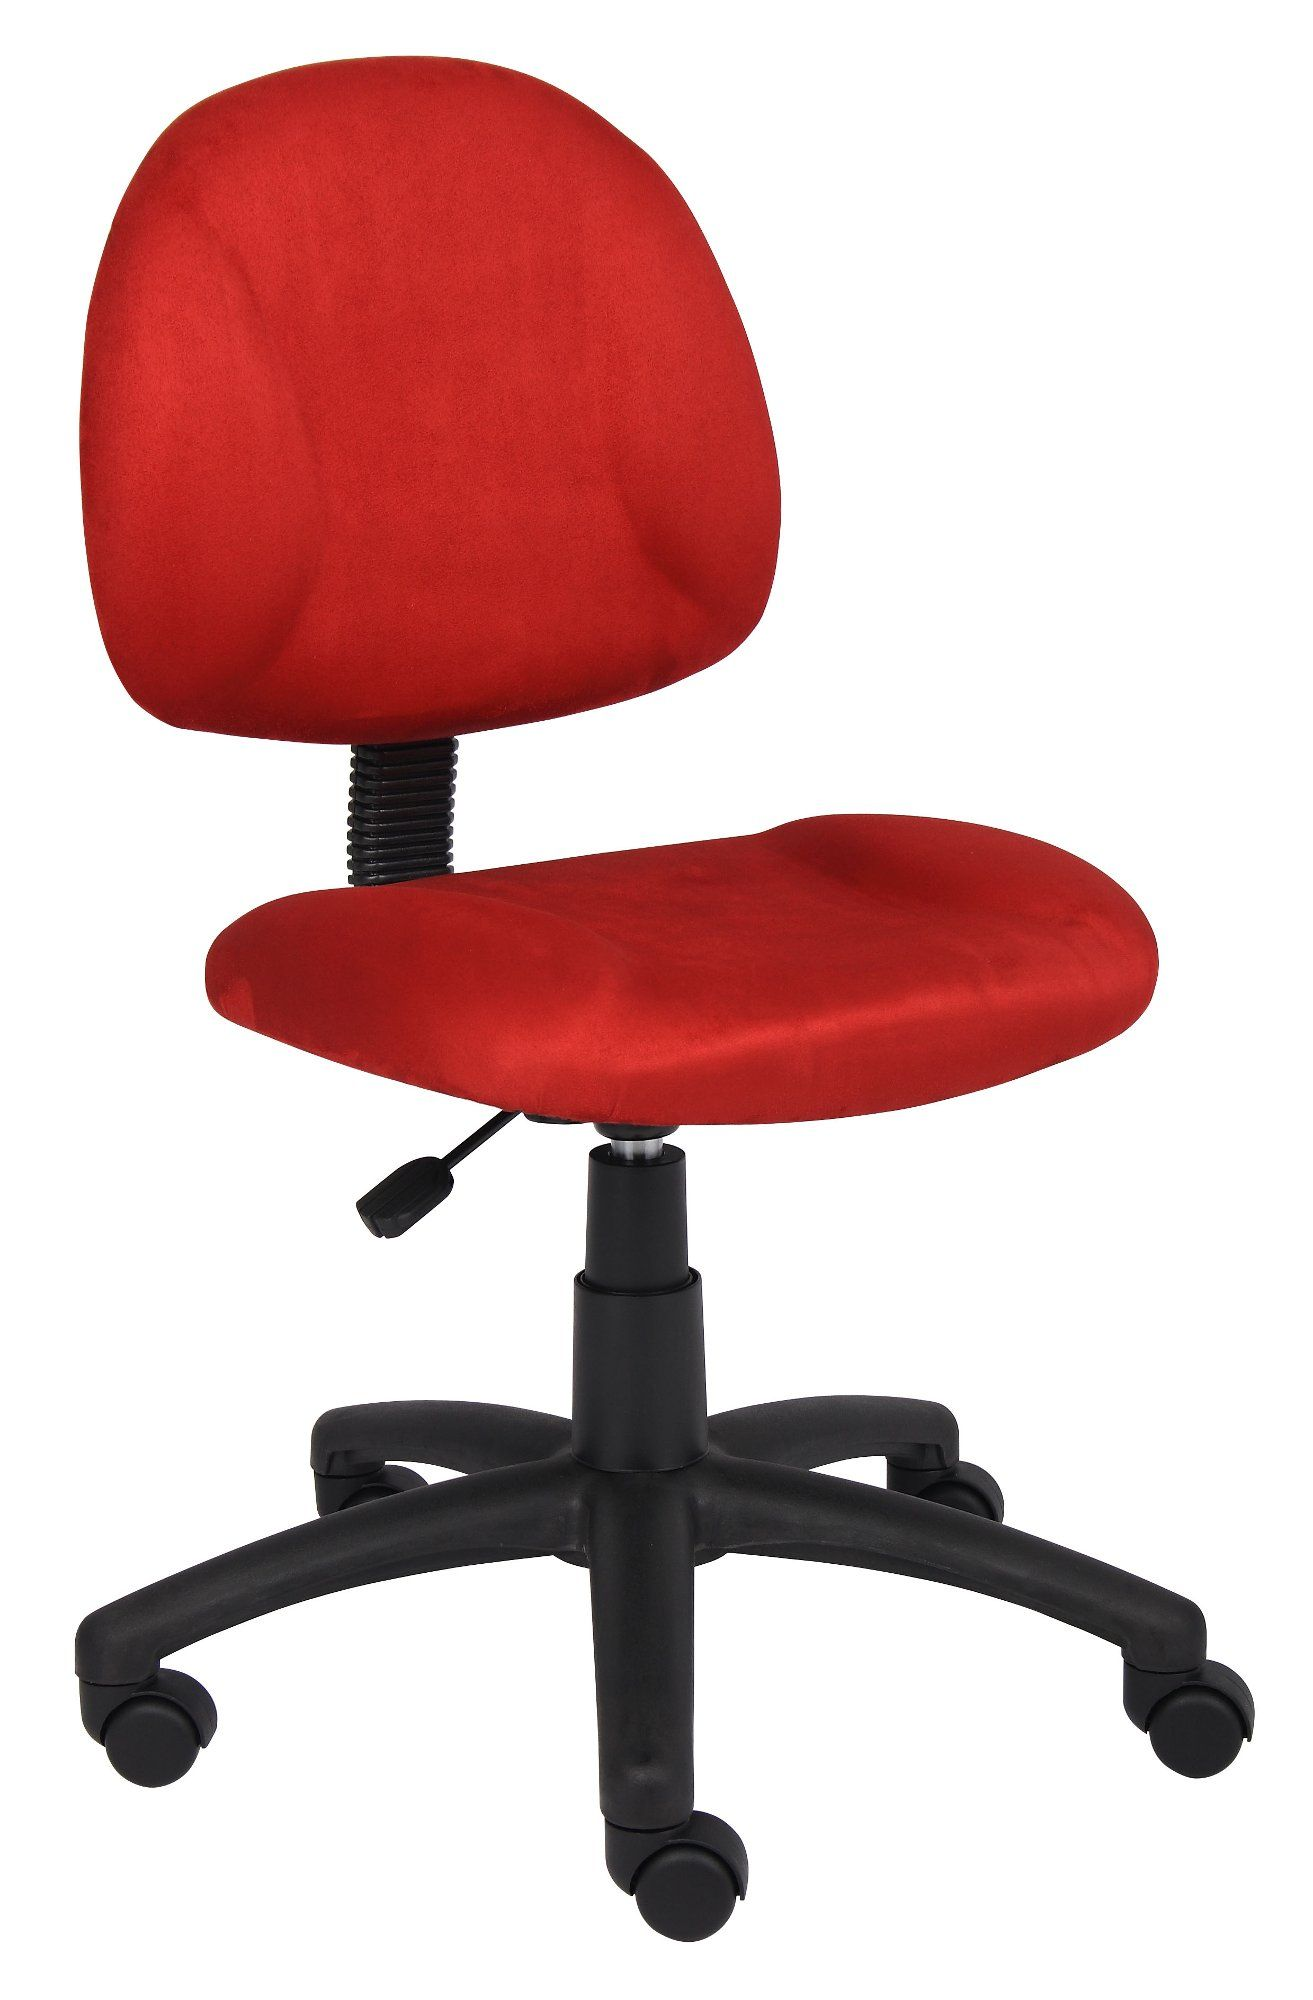 Red Home Office Chair Home office chairs, Chair, Chair types